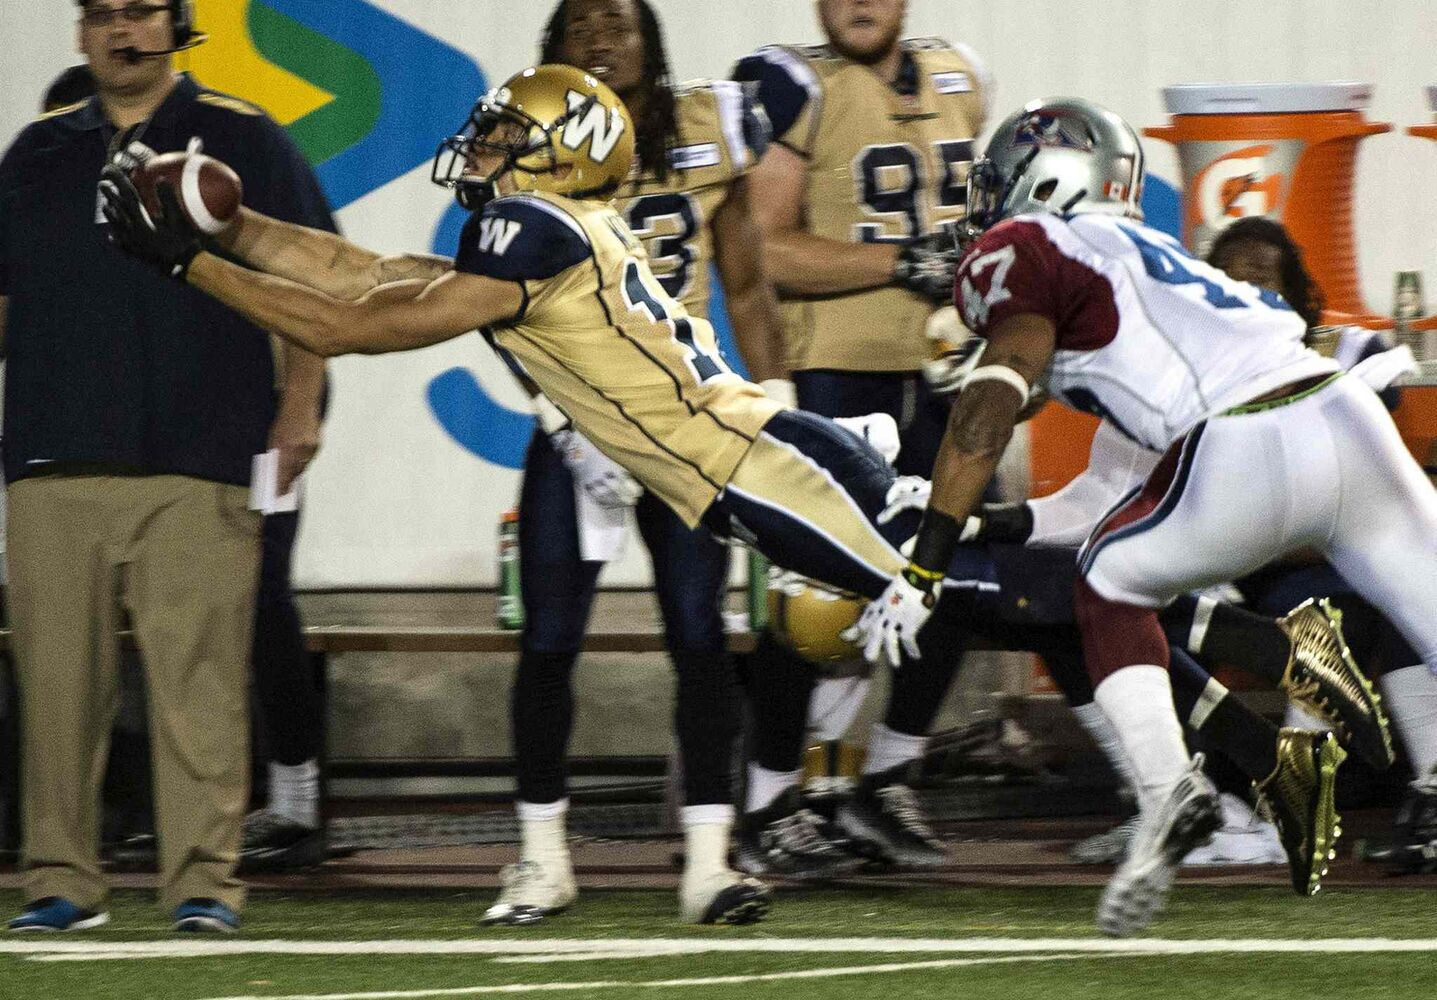 Winnipeg Blue Bombers' slotback Nick Moore catches a pass in front of Montreal Alouettes' defensive back Jamaan Webb during the third quarter of Friday's game. (Paul Chiasson / The Canadian Press)